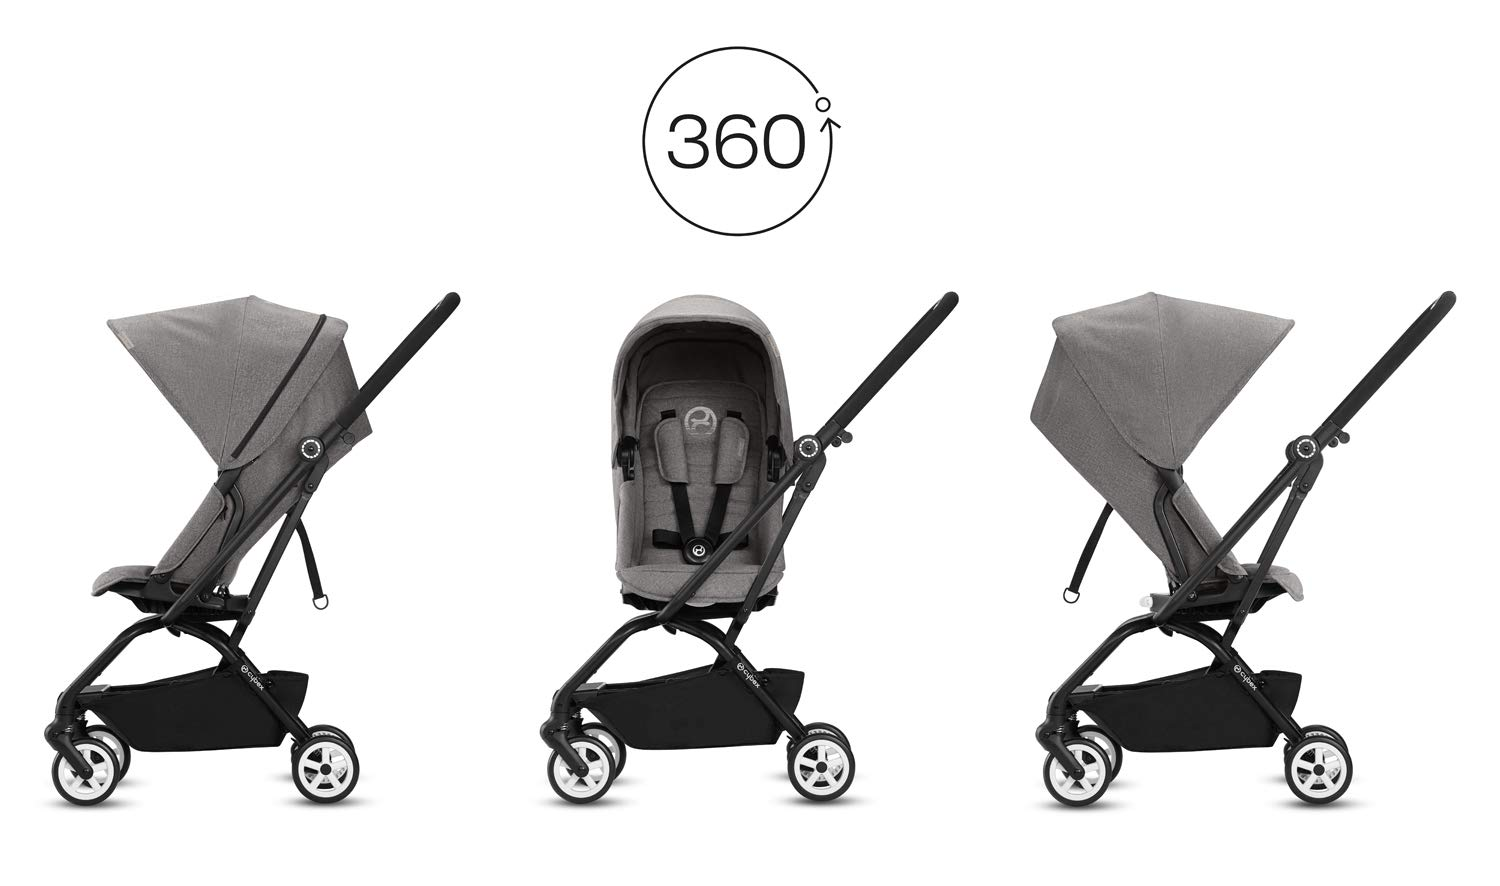 CYBEX Gold Eezy S Twist Compact Pushchair, 360° Rotatable Seat Unit, Ultra-Compact, From Birth to 17 kg (approx. 4 years), Lavastone Black  Sturdy, High-quality Compact Pushchair for newborns up to approx. 17 kg (approx. 4 years) with unique rotatable seat unit - Including rain cover for optimum use in all weather conditions Quick and easy change of direction with 360° rotatable seat unit, Comfortable sitting position thanks to stepless adjustable reclining backrest with lie-flat position, Puncture proof tyres and all-terrain wheel suspension Simple folding with one-hand folding mechanism for compact travel size (LxWxH: 26 x 45 x 56 cm), Extremely manoeuvrable due to narrow wheelbase, Can also be used as 3-in-1 travel system with separately available CYBEX and gb infant carriers and the baby cocoon S (sold separately) 2